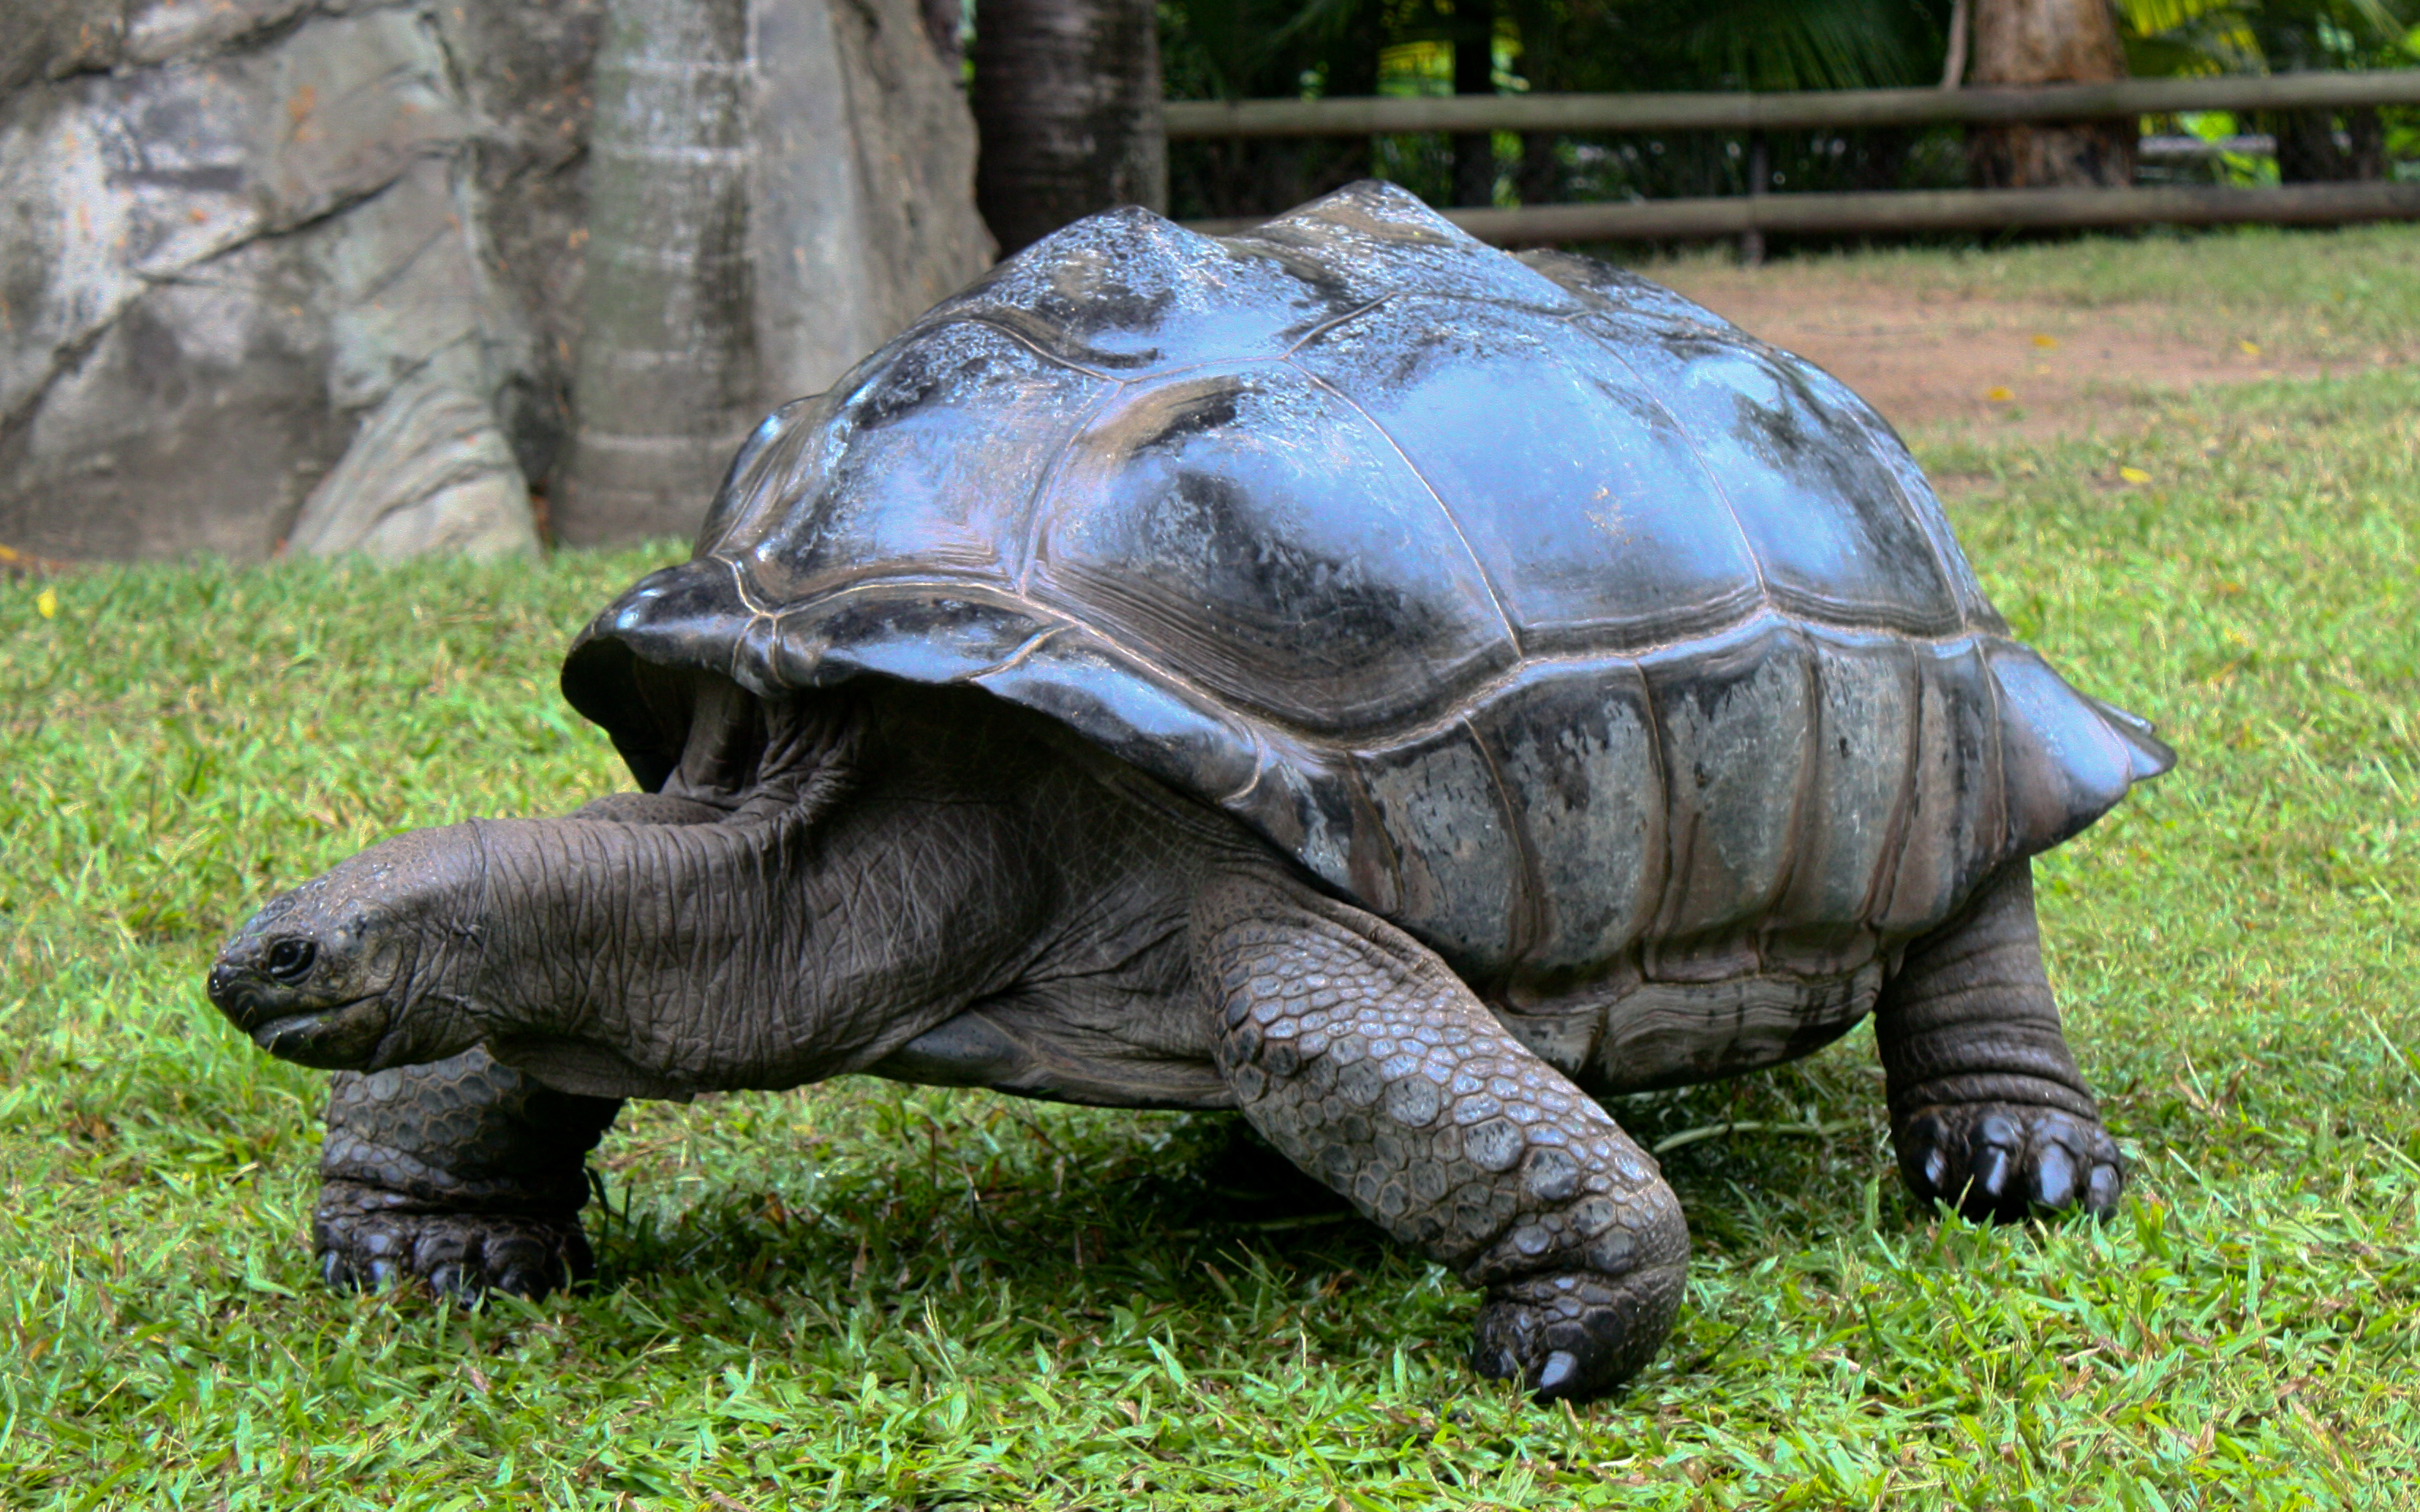 A Giant Tortoise Can Travel